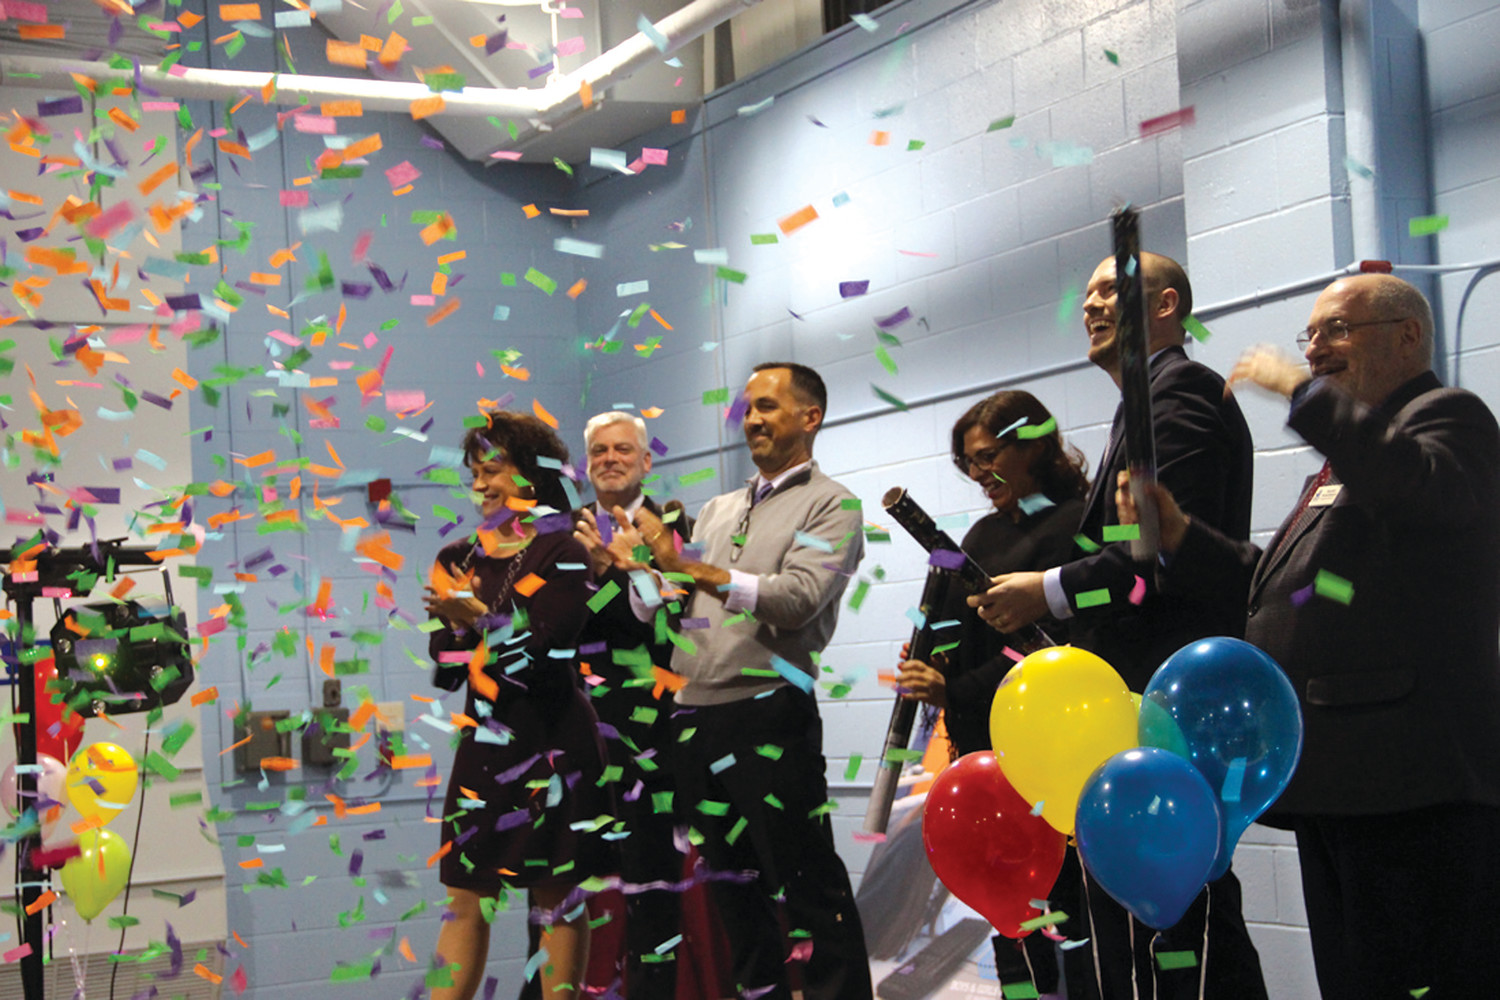 NO RIBBONS HERE: Lara D'Antuono insisted on not having a regular, boring ribbon cutting to celebrate the opening of the new branch of the Warwick Boys & Girls Club on Tuesday night. Instead, she opted for four of the club's biggest benefactors to fire confetti cannons.